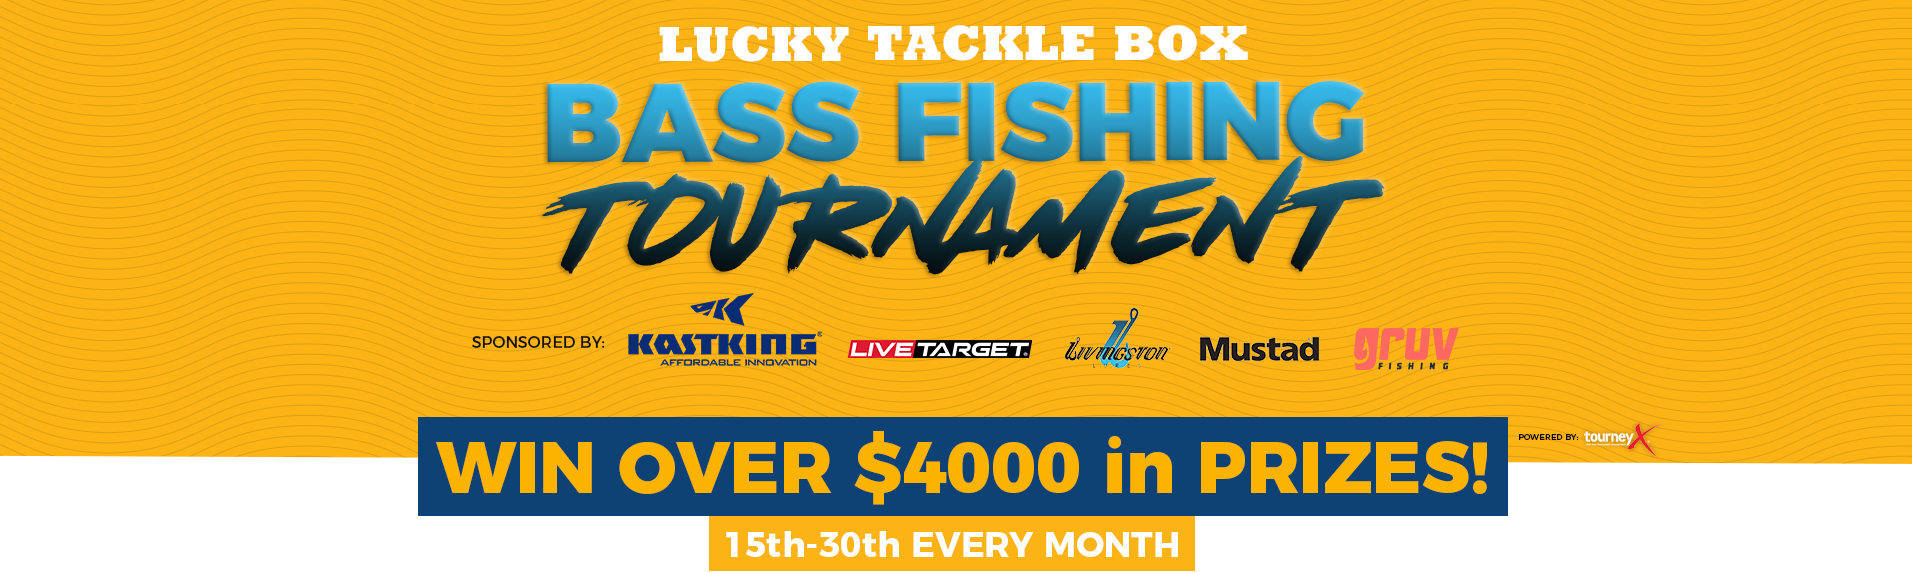 Lucky Tackle Box Bass Fishing Tournament